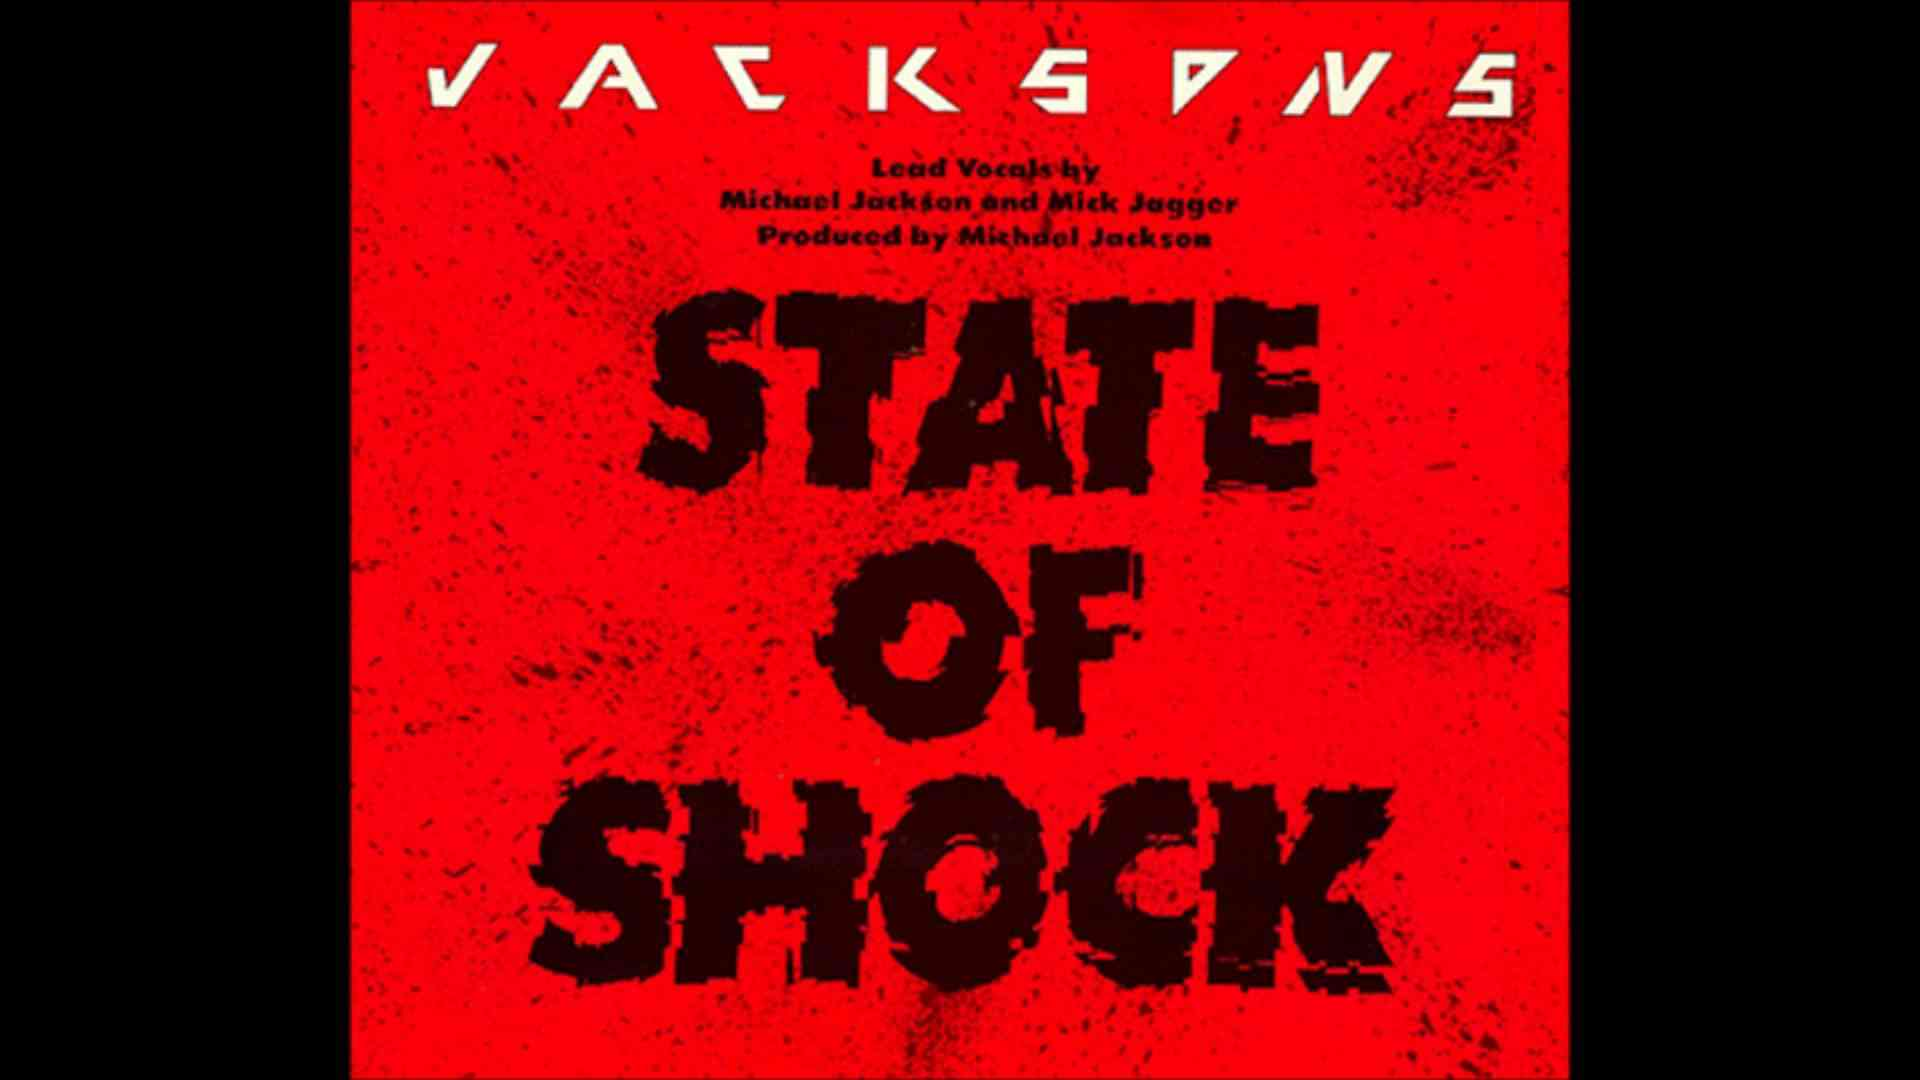 The Jacksons feat. Mick Jagger - State Of Shock (Dance Mix) [Audio HQ] HD - YouTube